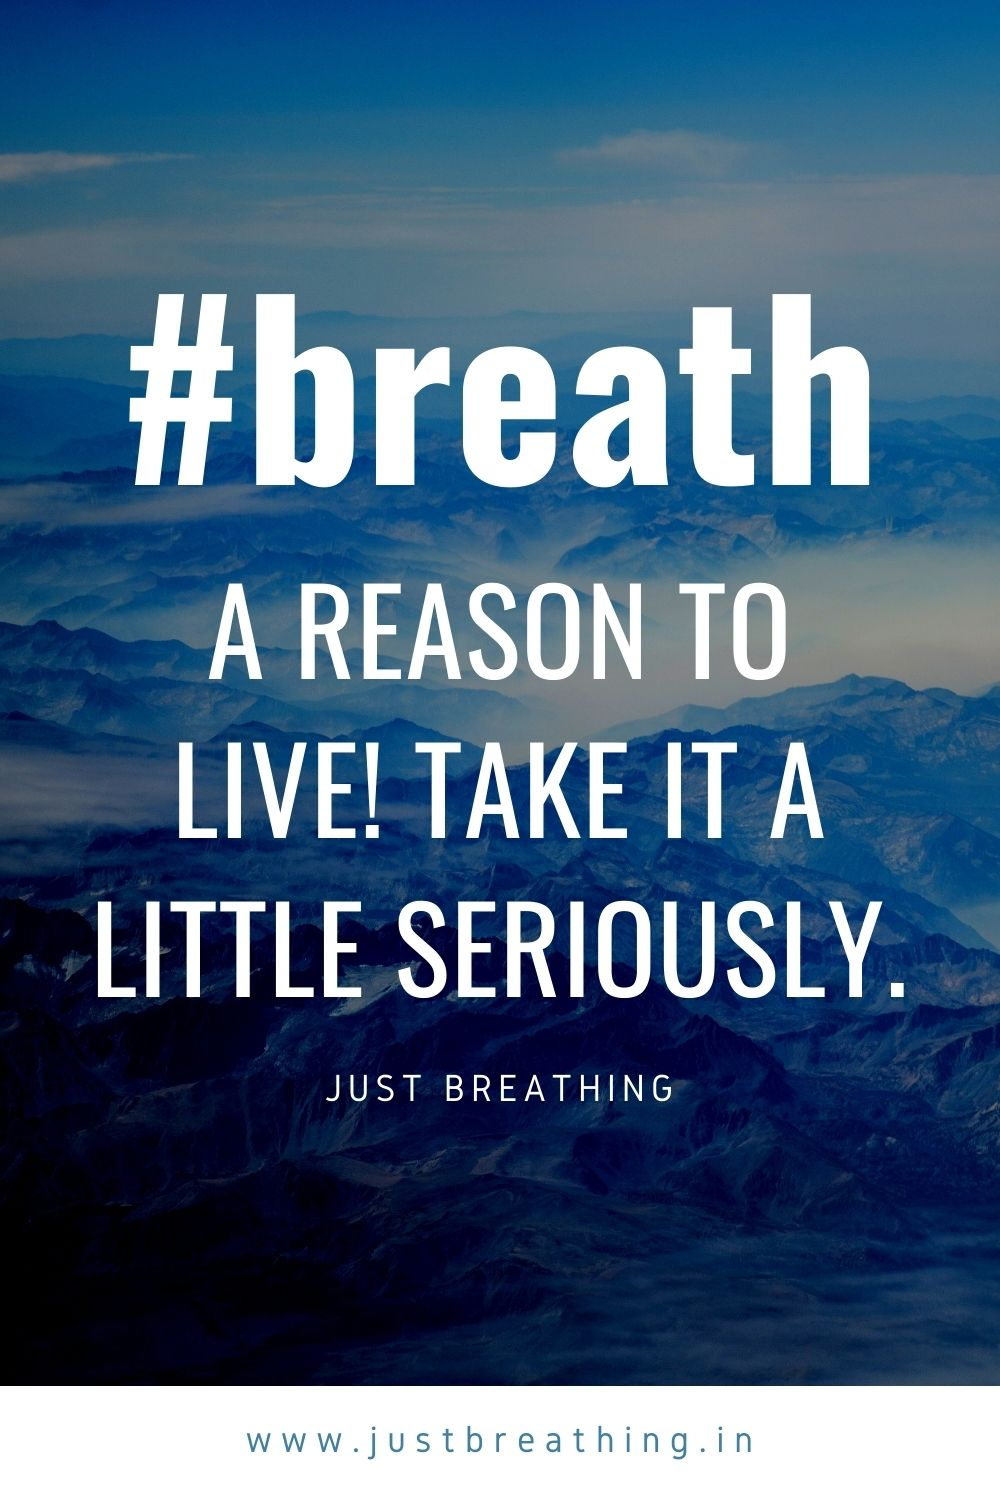 Breathe is A reason to live Take a deep breathe little seriously. Just breathing